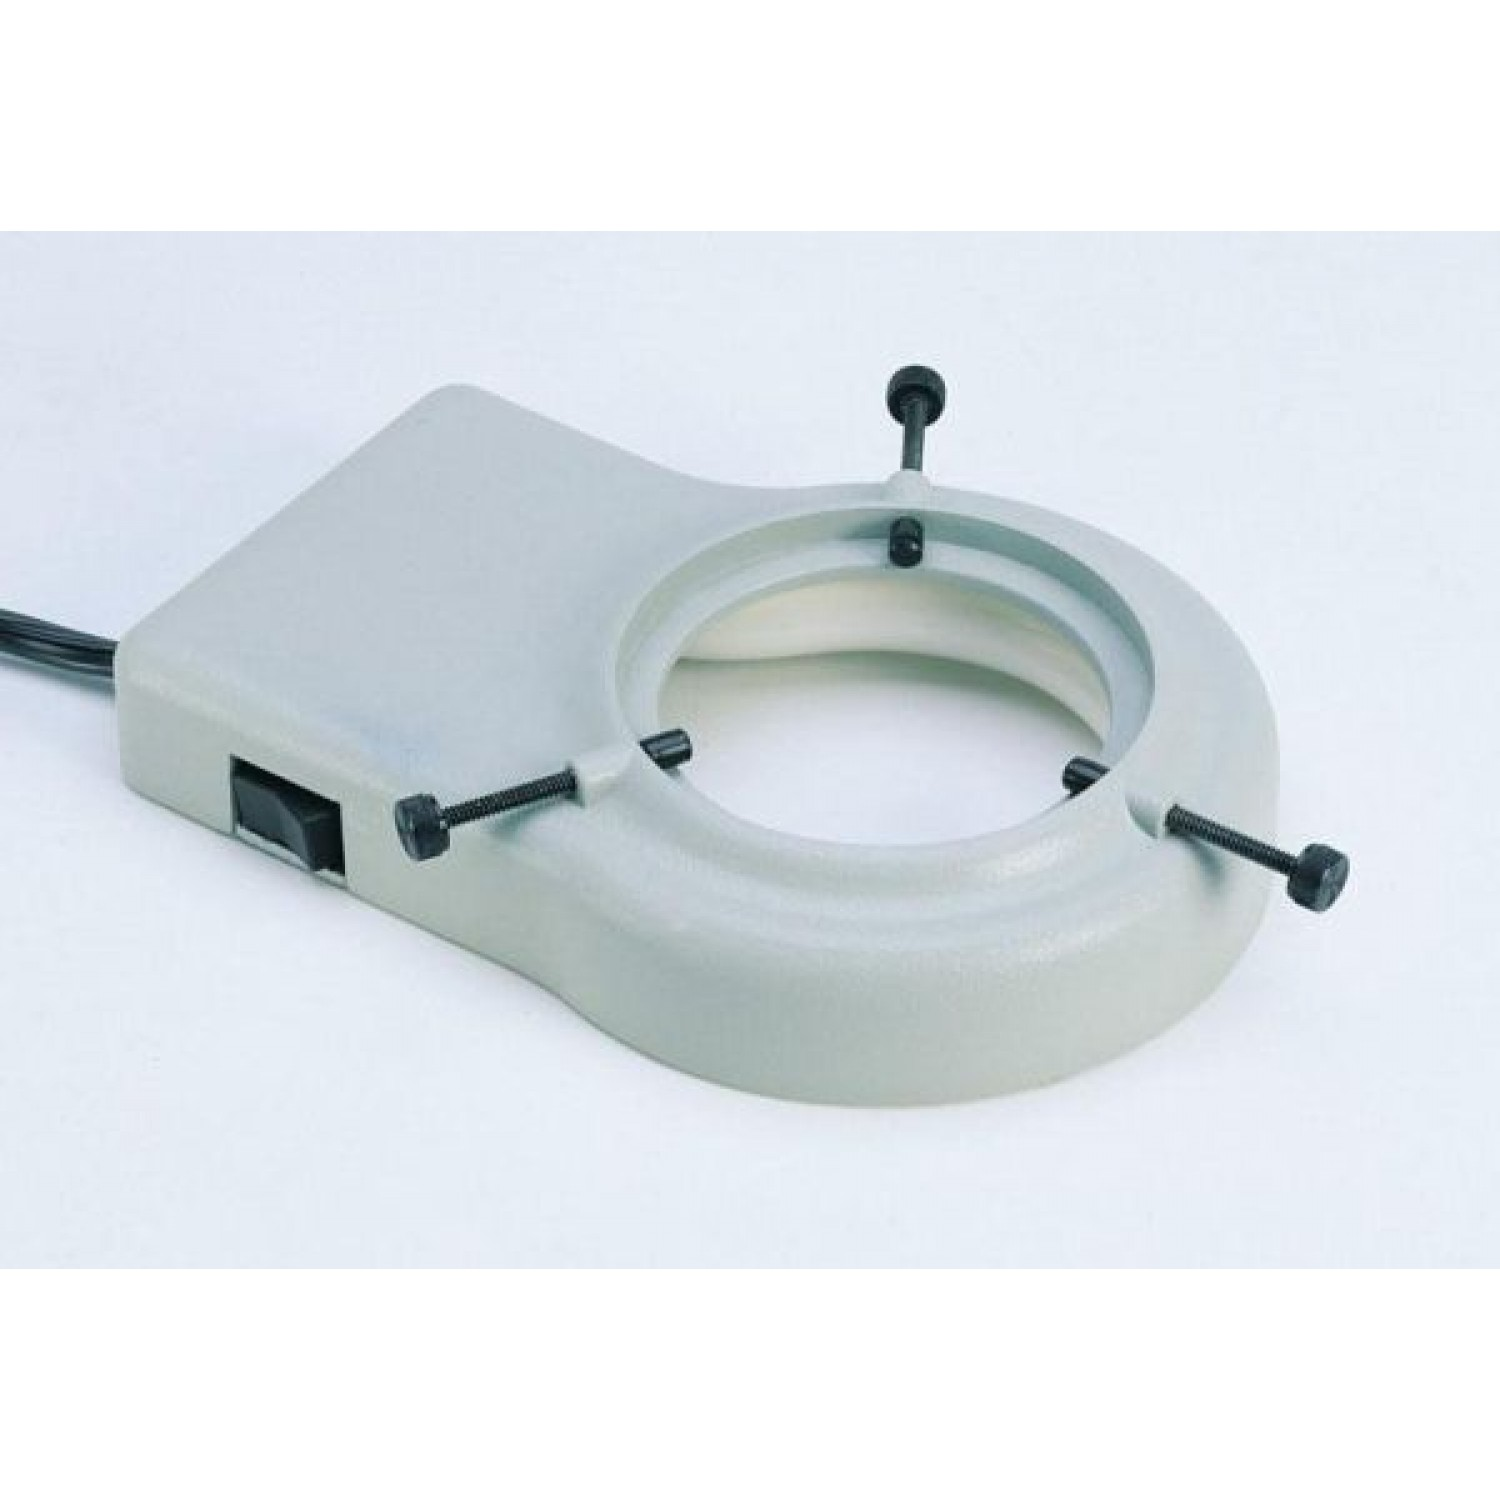 Luxo Microscope FL-Ring Light, Standard